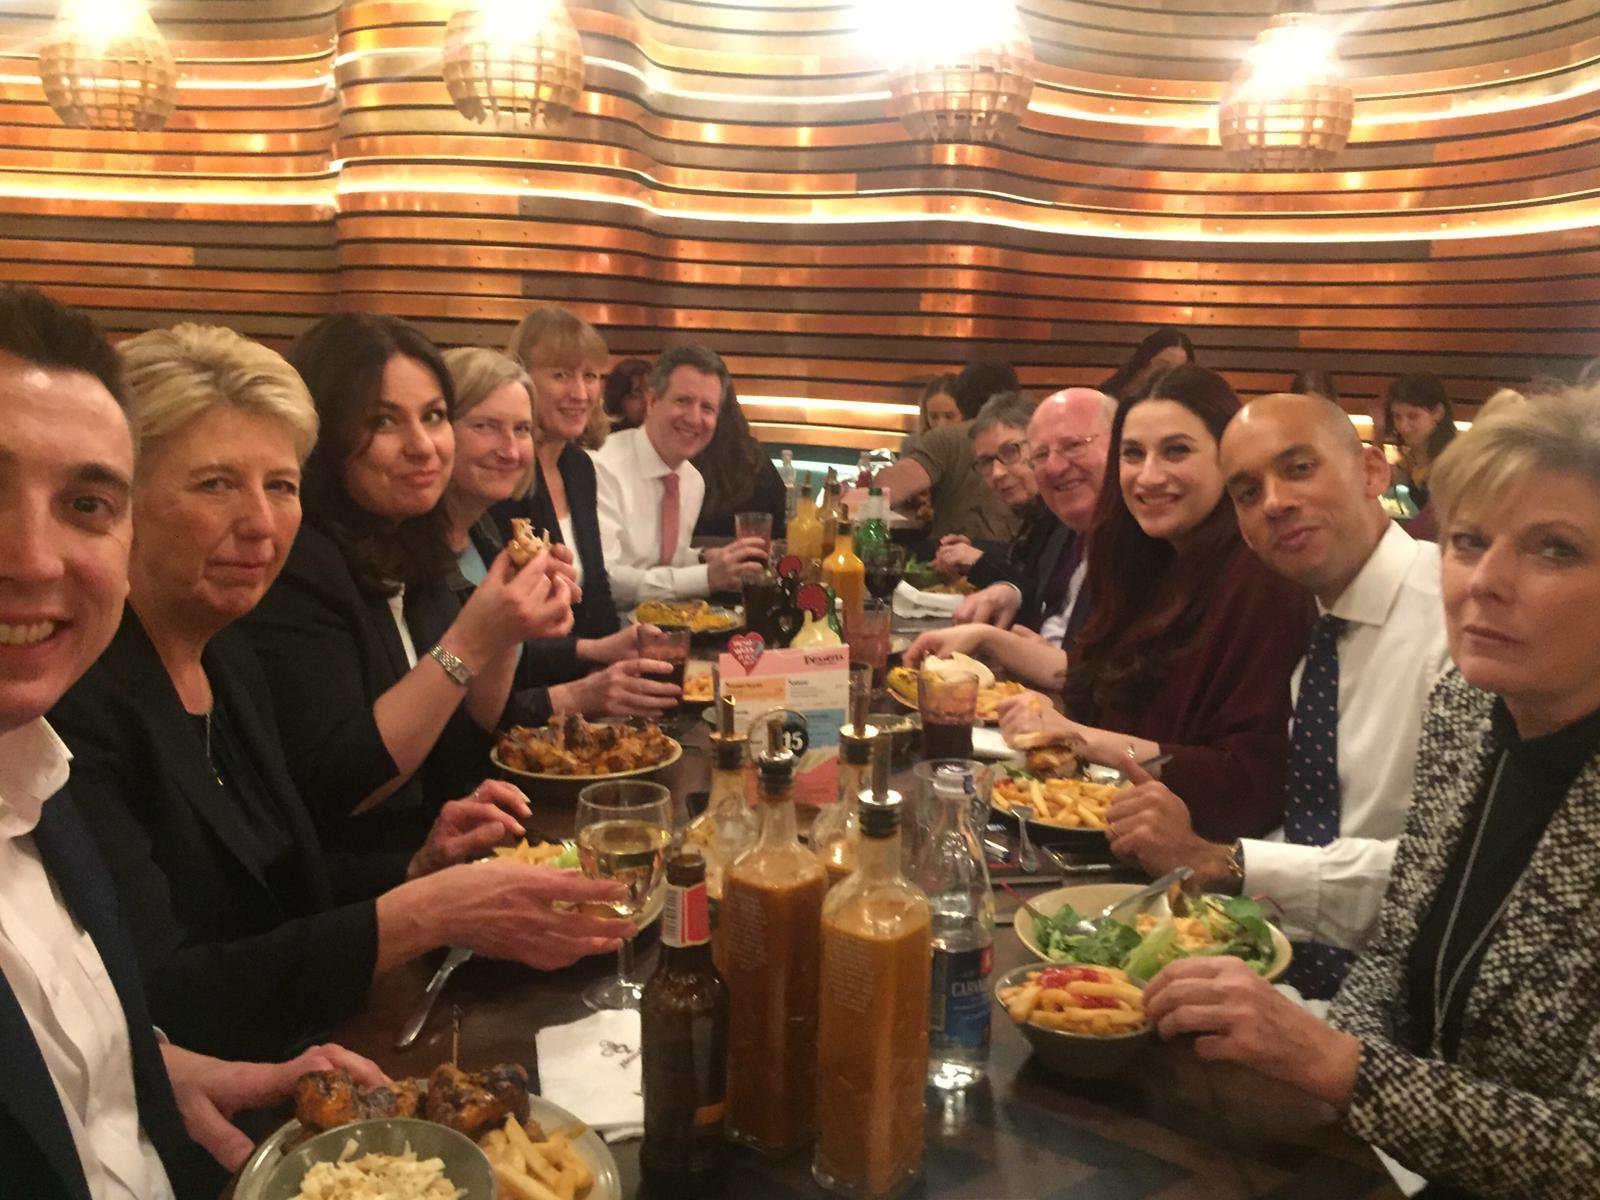 METRO GRAB from @TheIndGroup Twitter Link: https://twitter.com/TheIndGroup/status/1100123037037400064 TIG have a Nandos to look like normal people, fail miserably Credit: @TheIndGroup